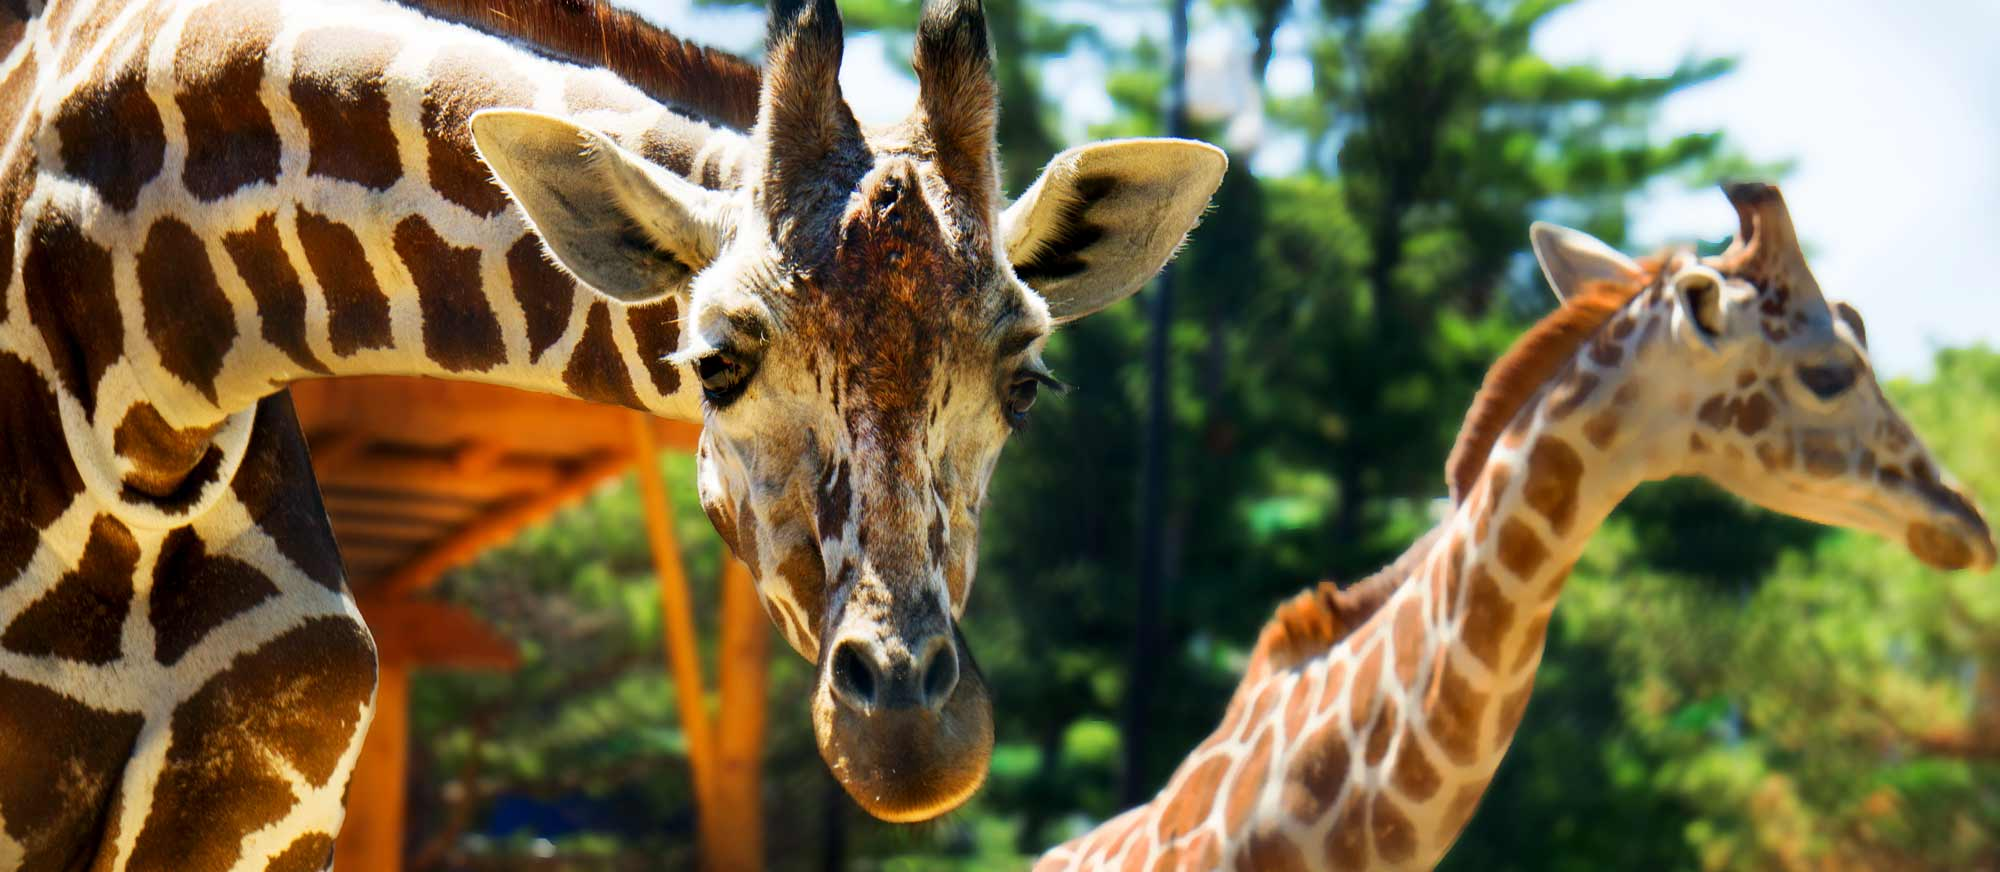 giraffes-looking-saurated-and-lighting-fixed